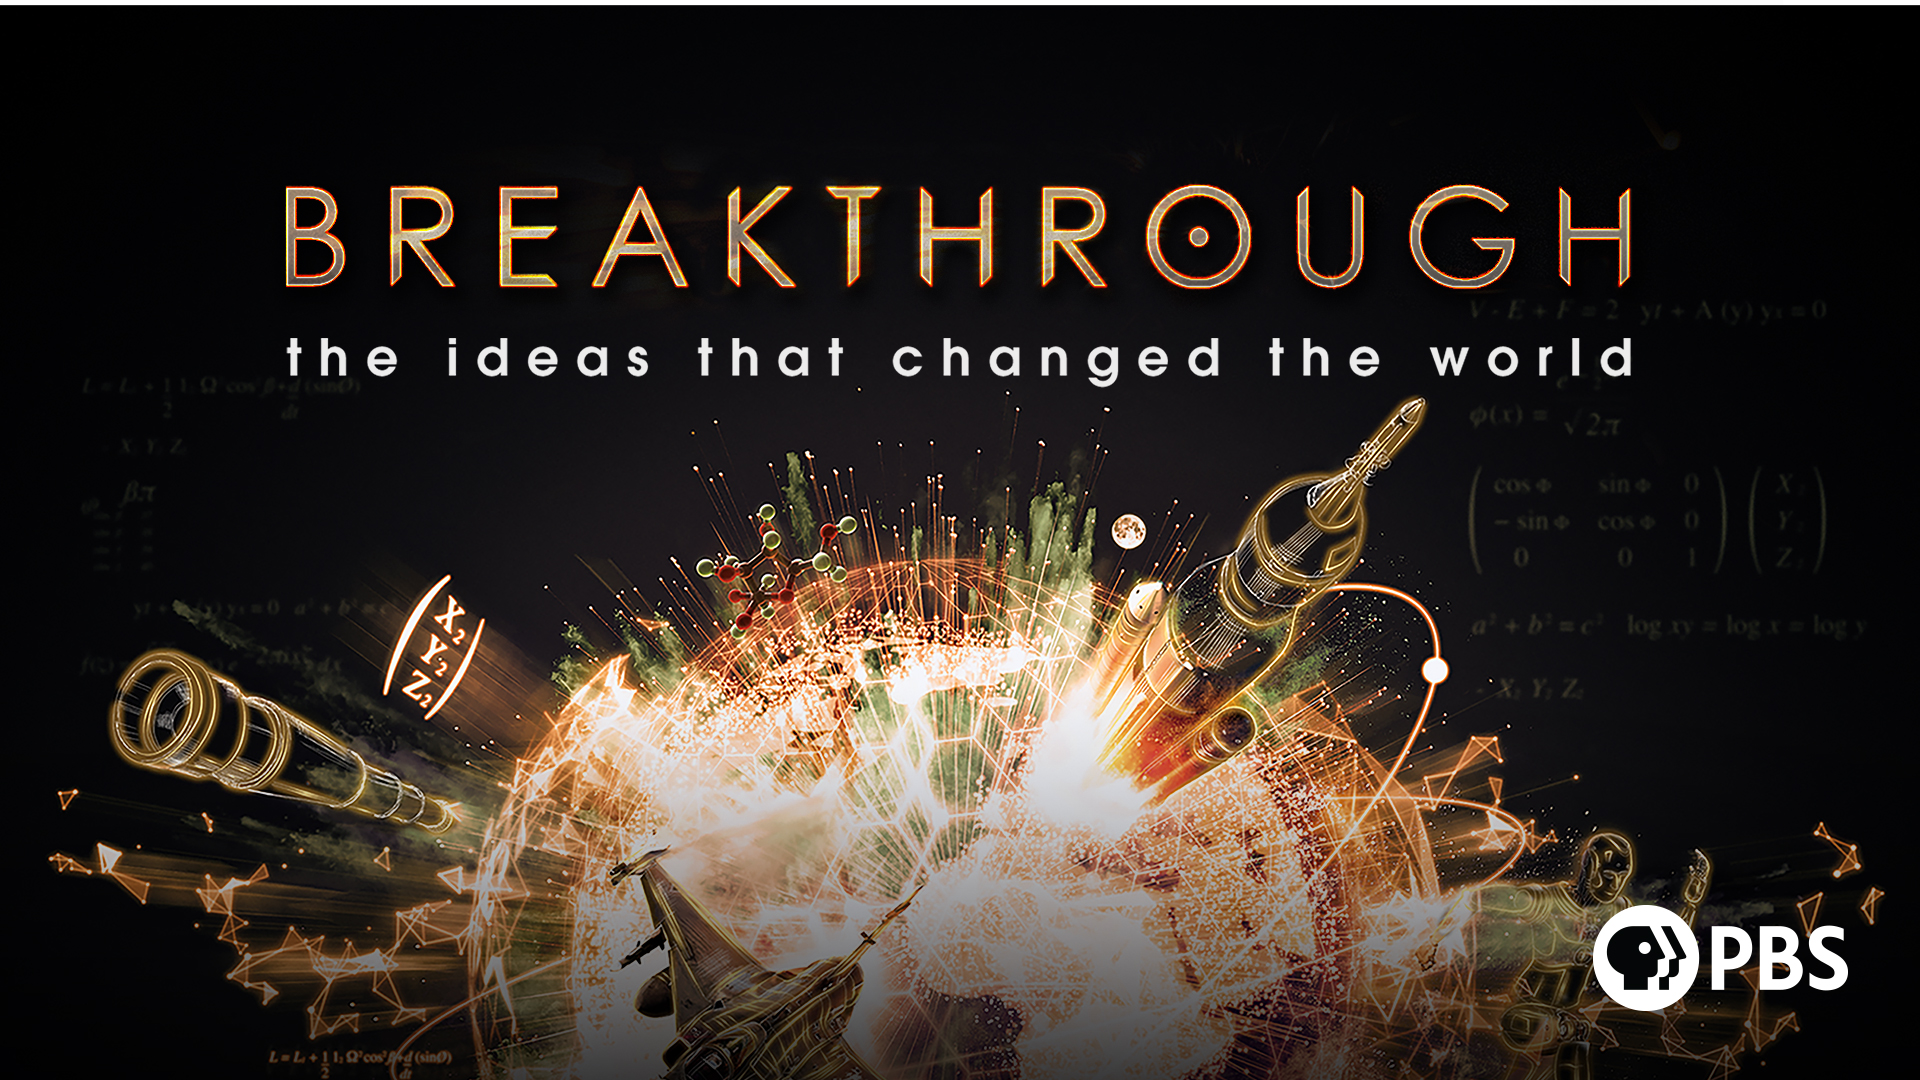 Breakthrough: The Ideas That Changed the World: Season 1